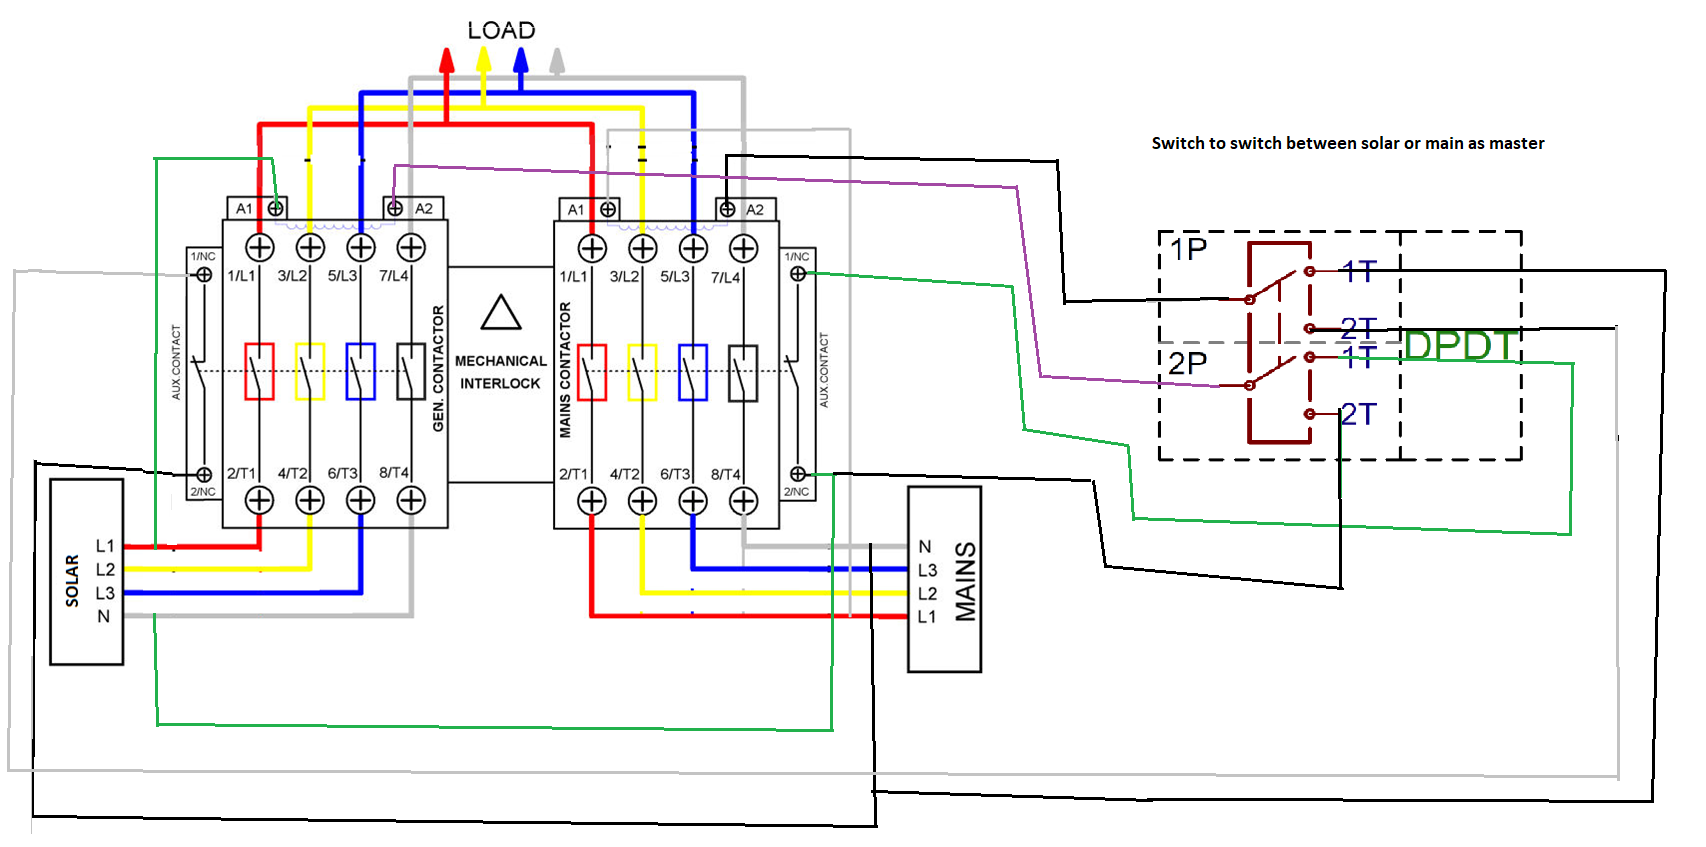 13+ Selector switch diagram ideas in 2021